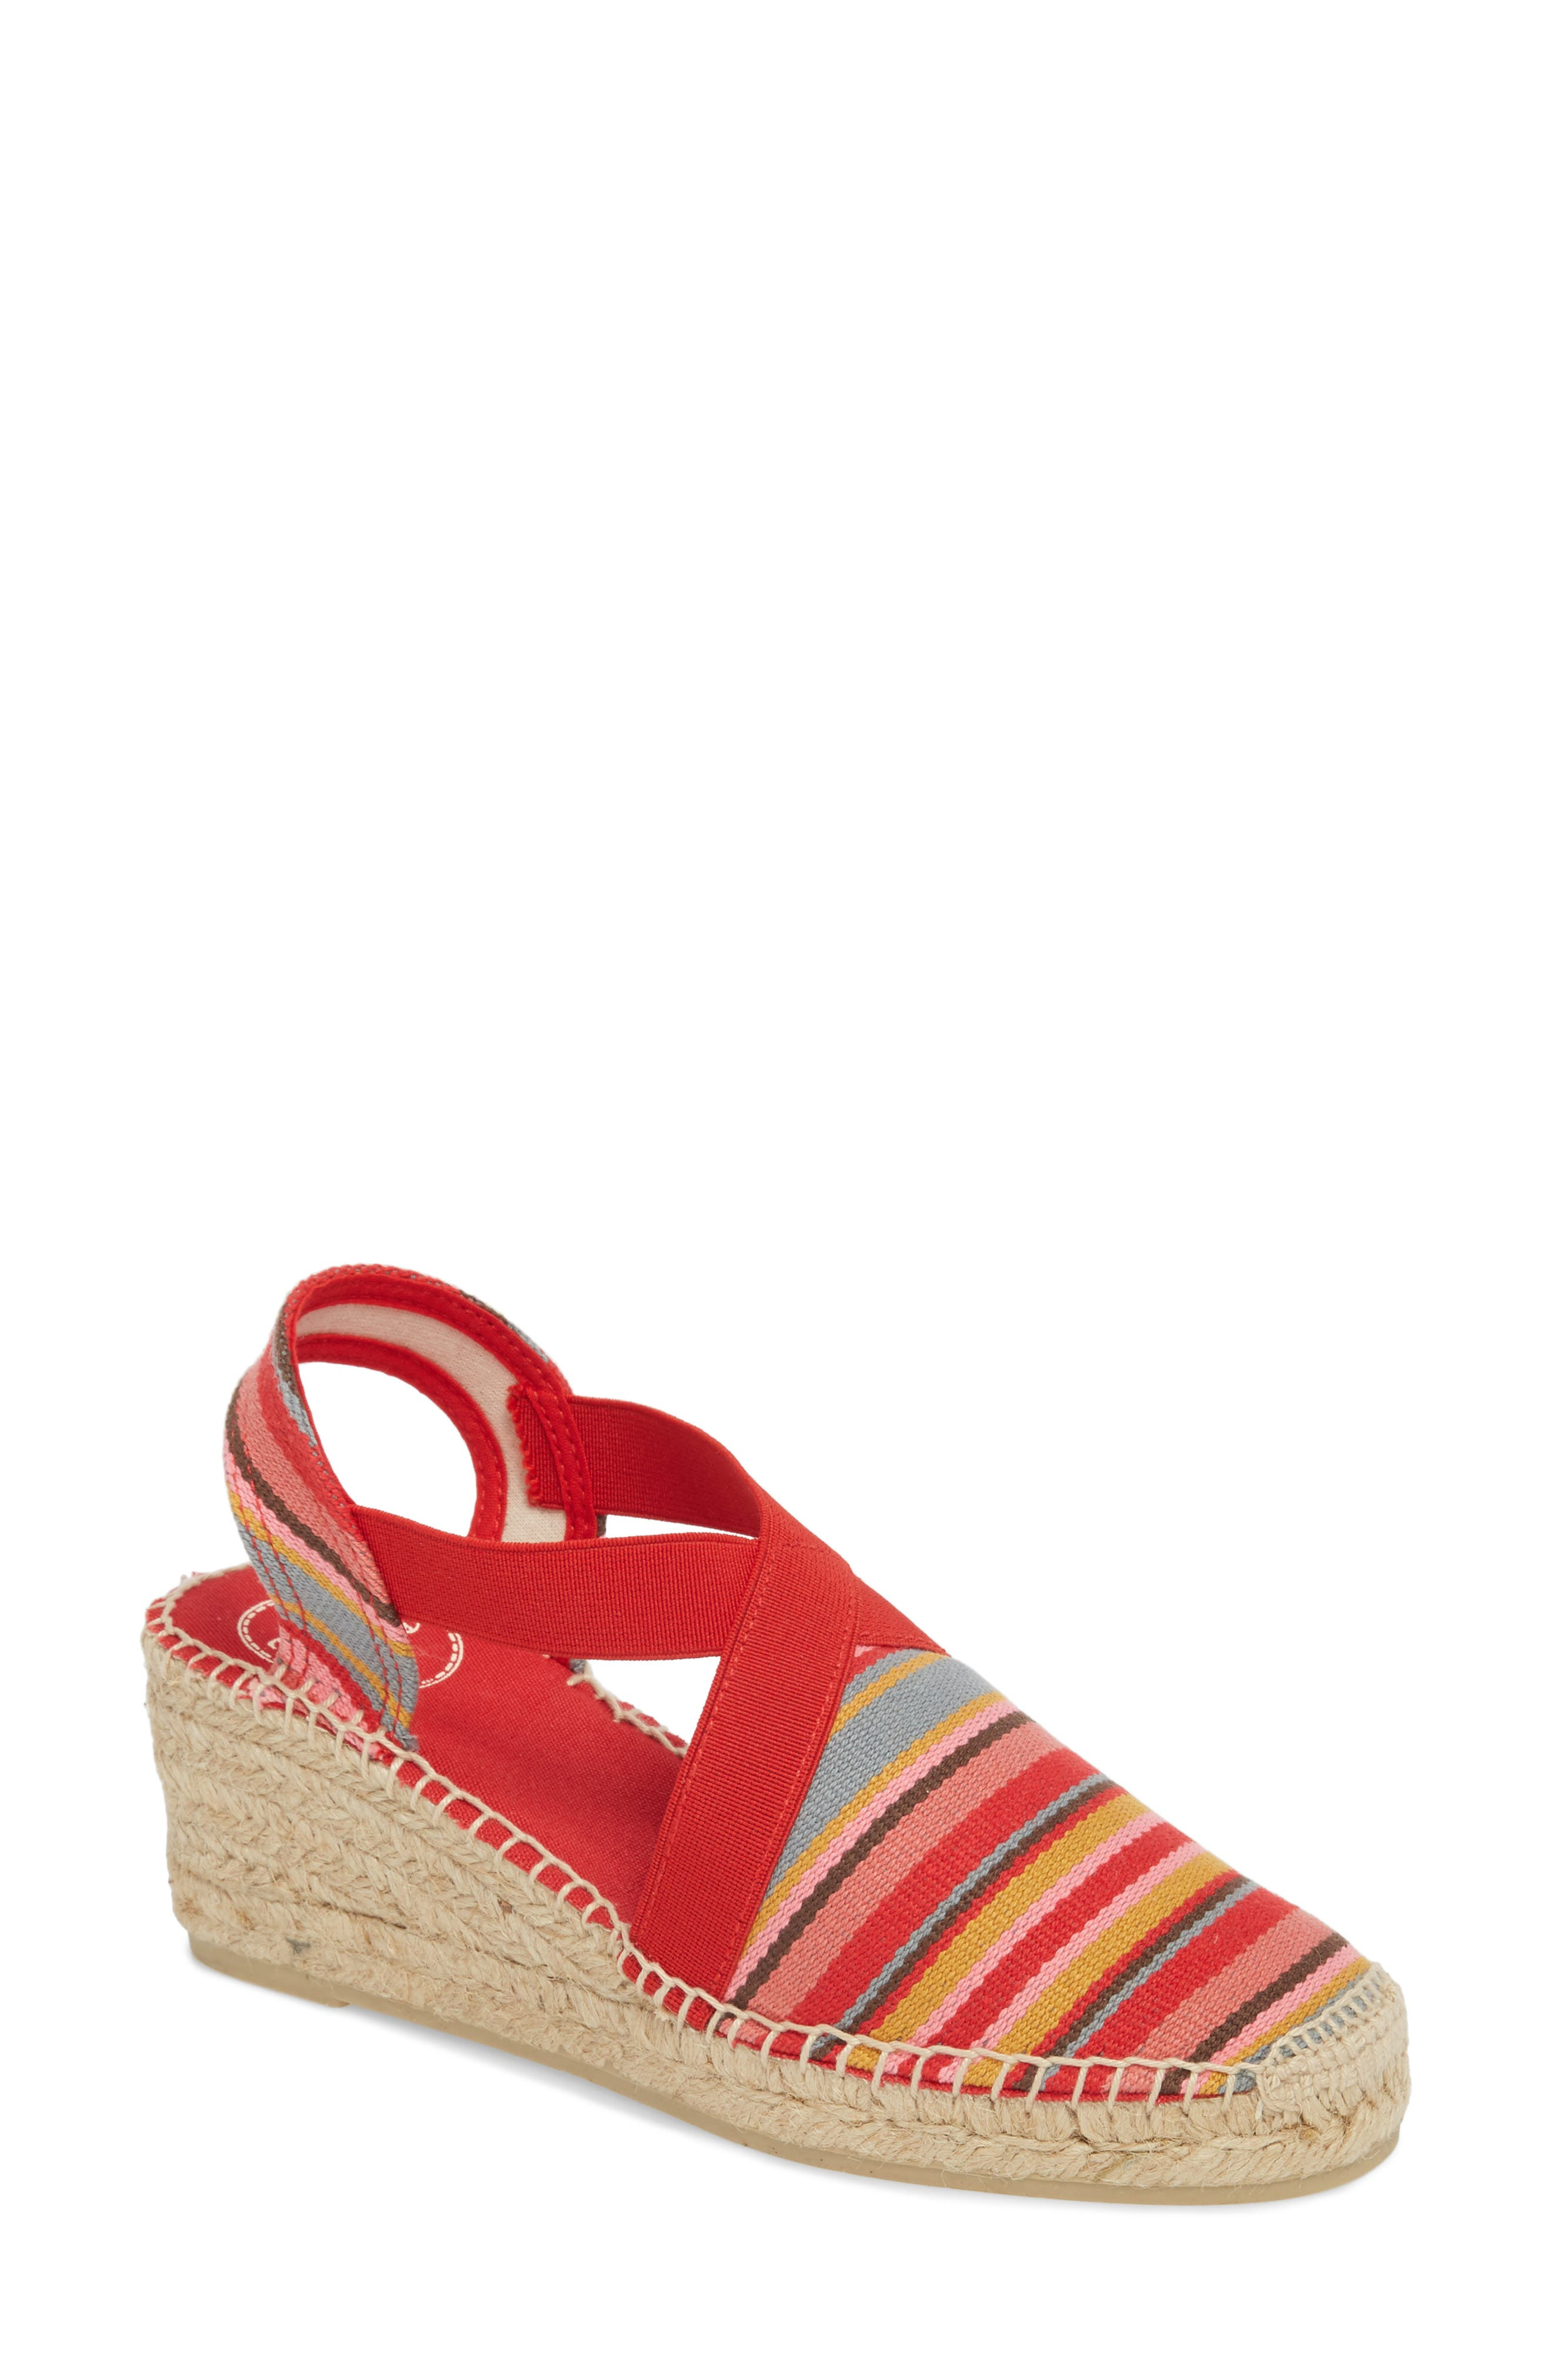 'Tarbes' Espadrille Wedge Sandal,                         Main,                         color, Red Fabric